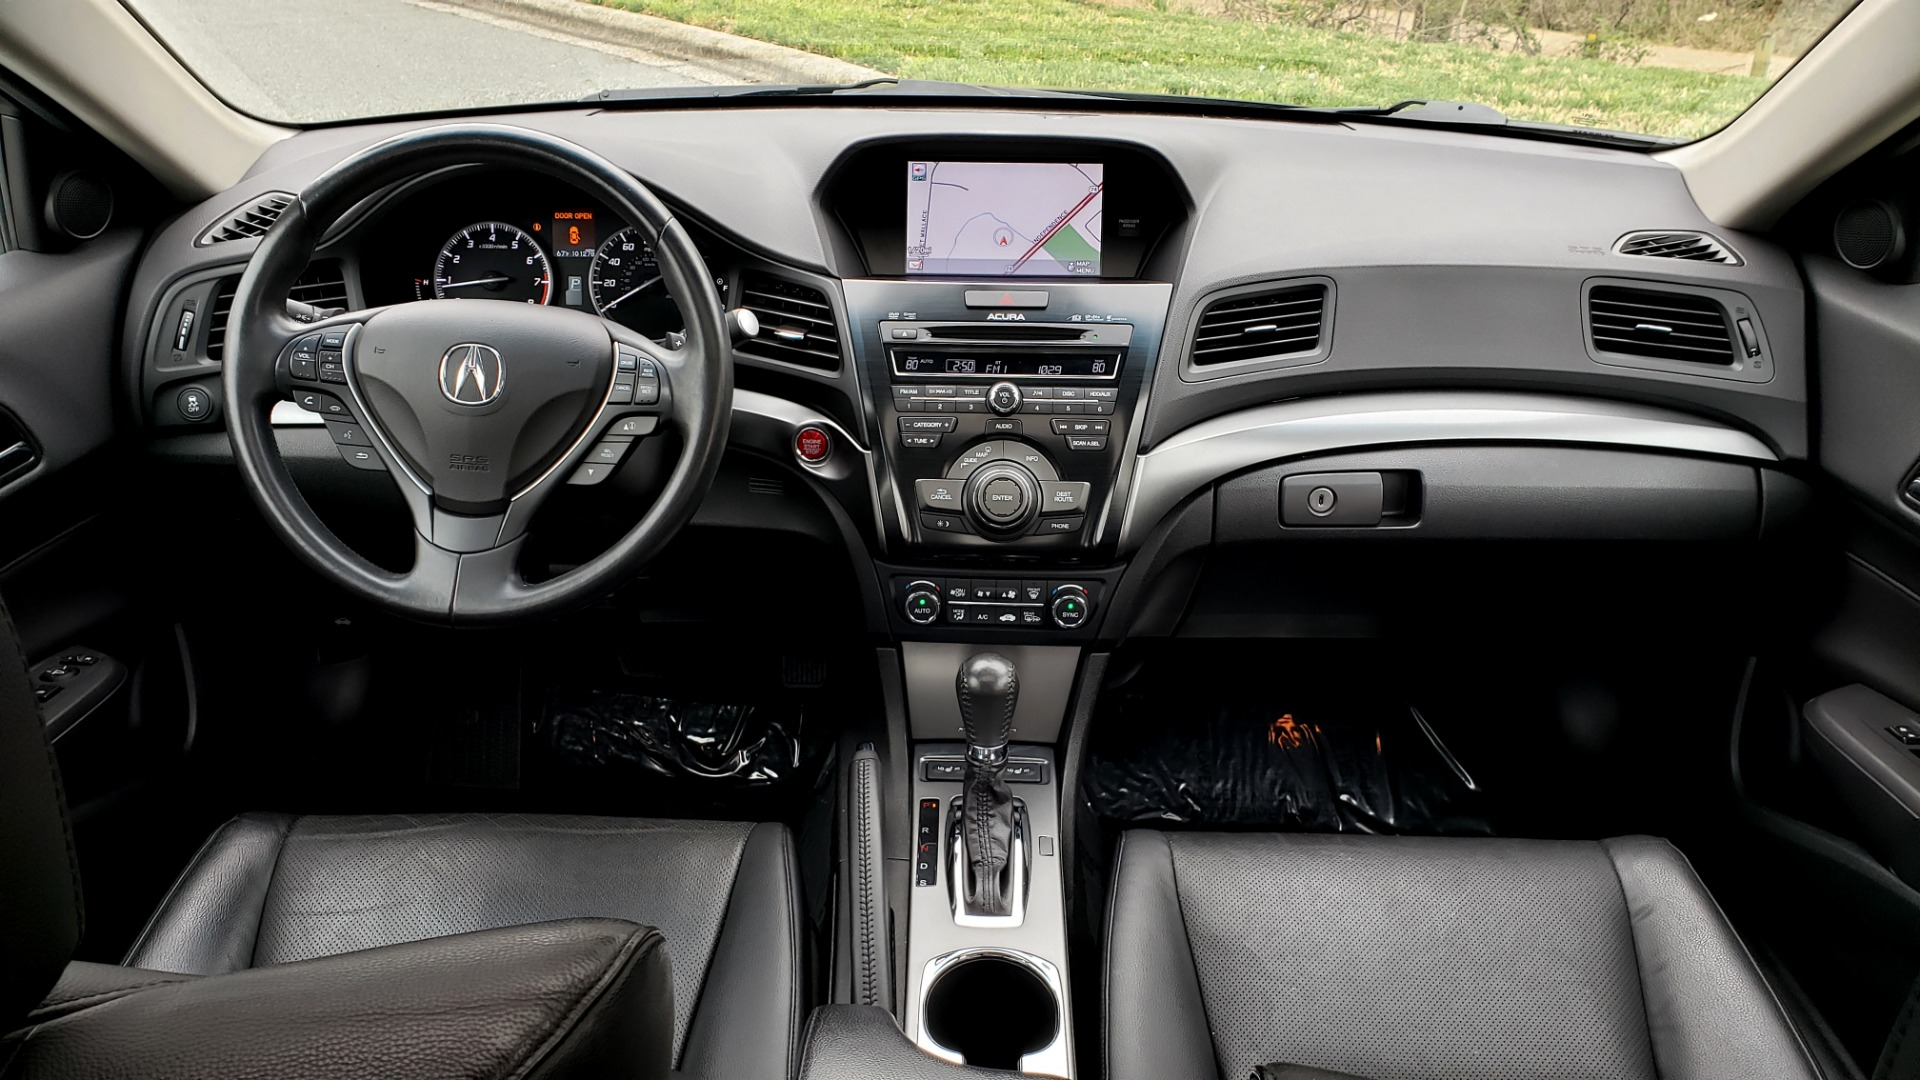 Used 2013 Acura ILX TECH PKG / SUNROOF / NAV / DUAL-ZONE A/C / REARVIEW for sale Sold at Formula Imports in Charlotte NC 28227 69